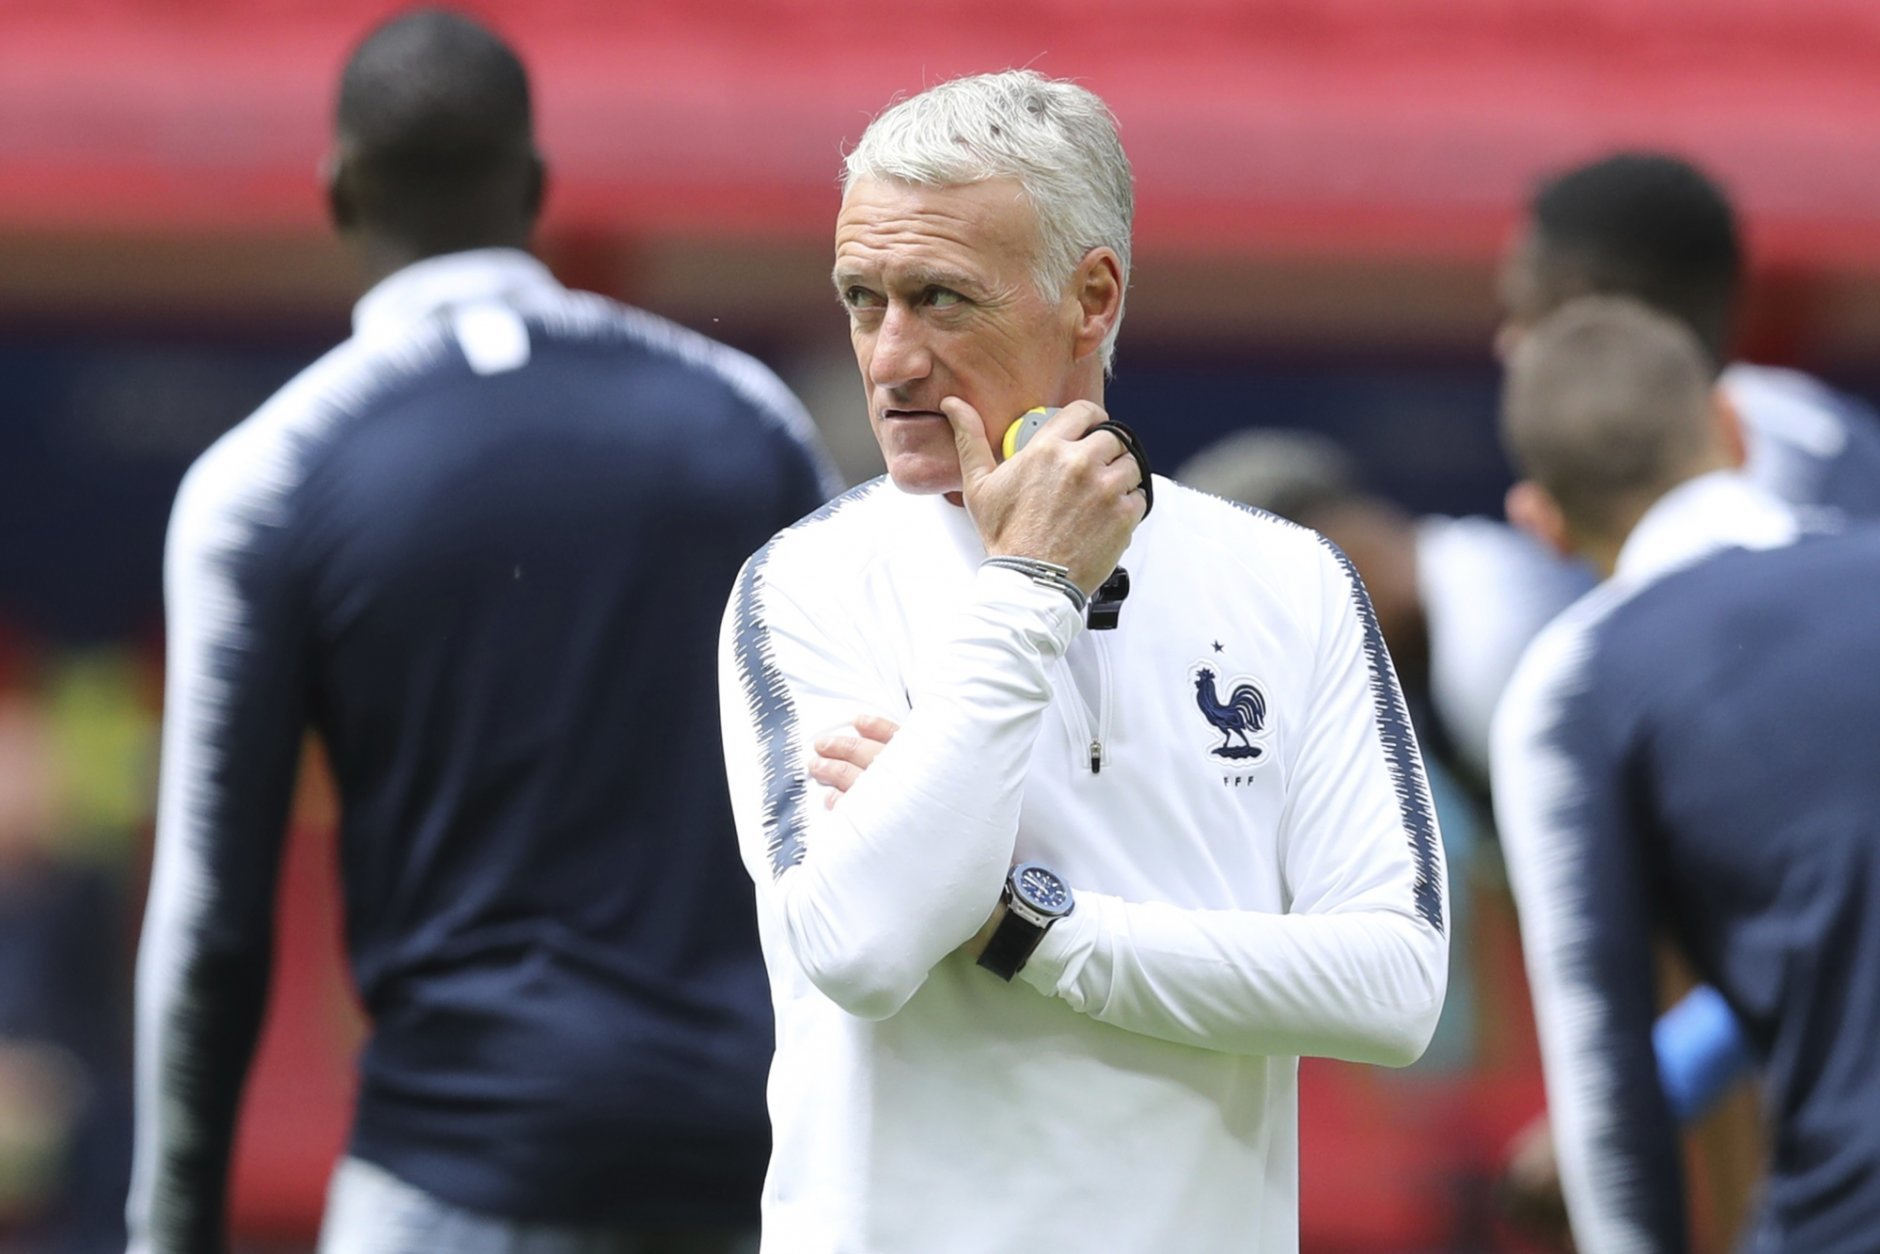 France headcoach Didier Deschamps looks on during France's official training on the eve of the group C match between France and Australia at the 2018 soccer World Cup in the Kazan Arena in Kazan, Russia, Friday, June 15, 2018. (AP Photo/David Vincent)